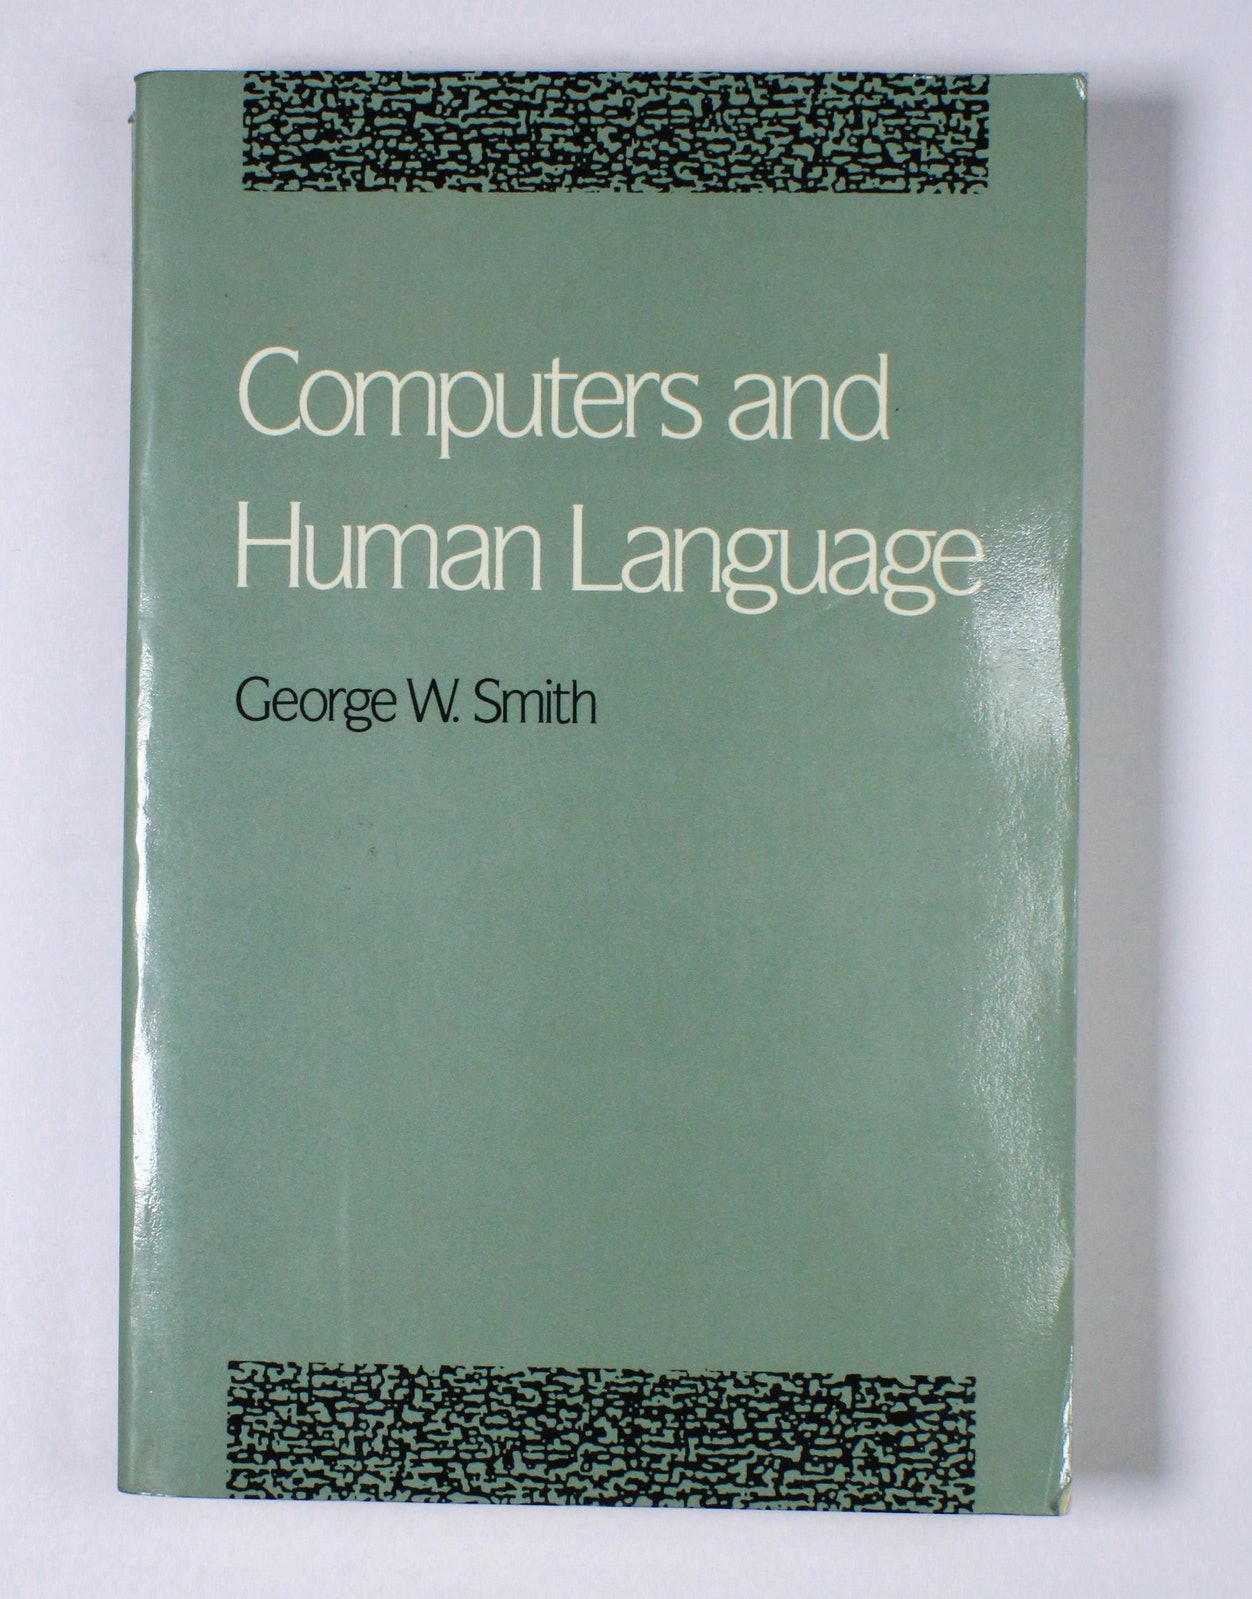 Computers and Human Language